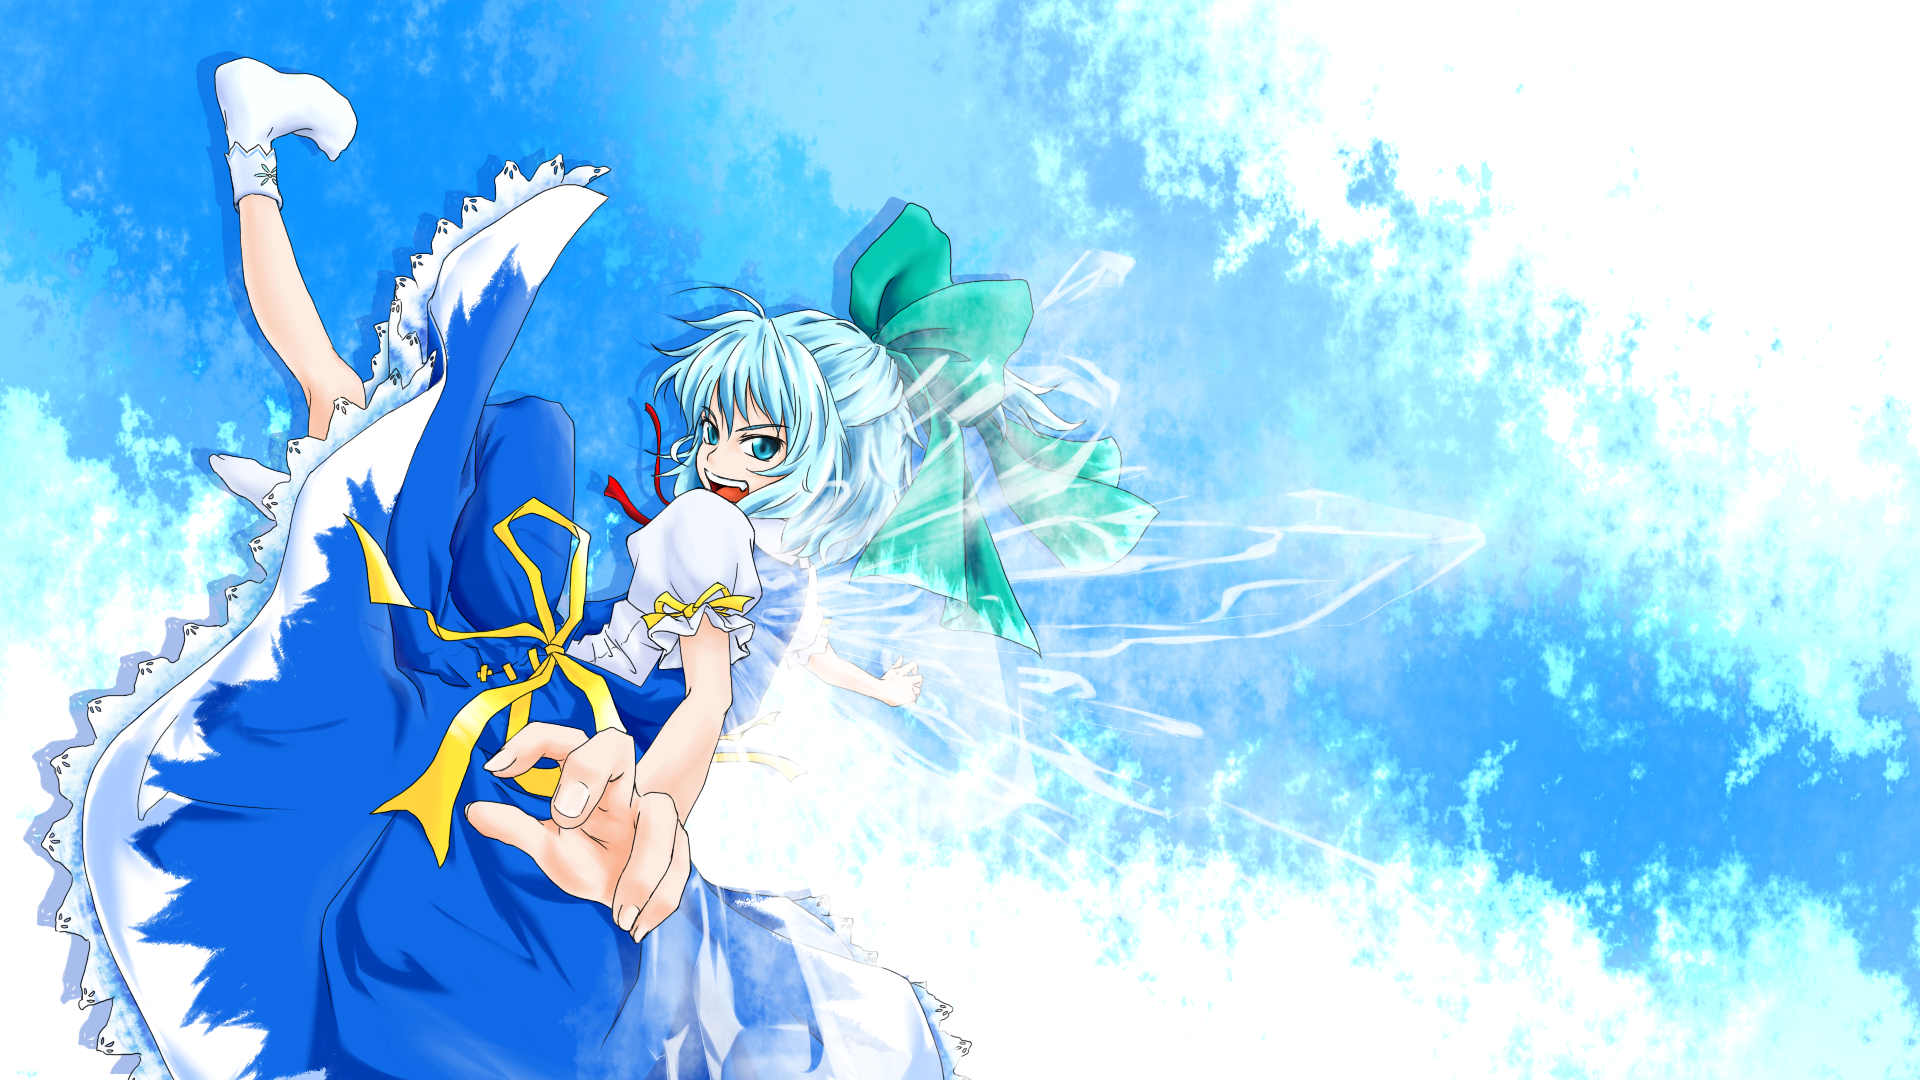 touhou project wallpaper wallpapersafari